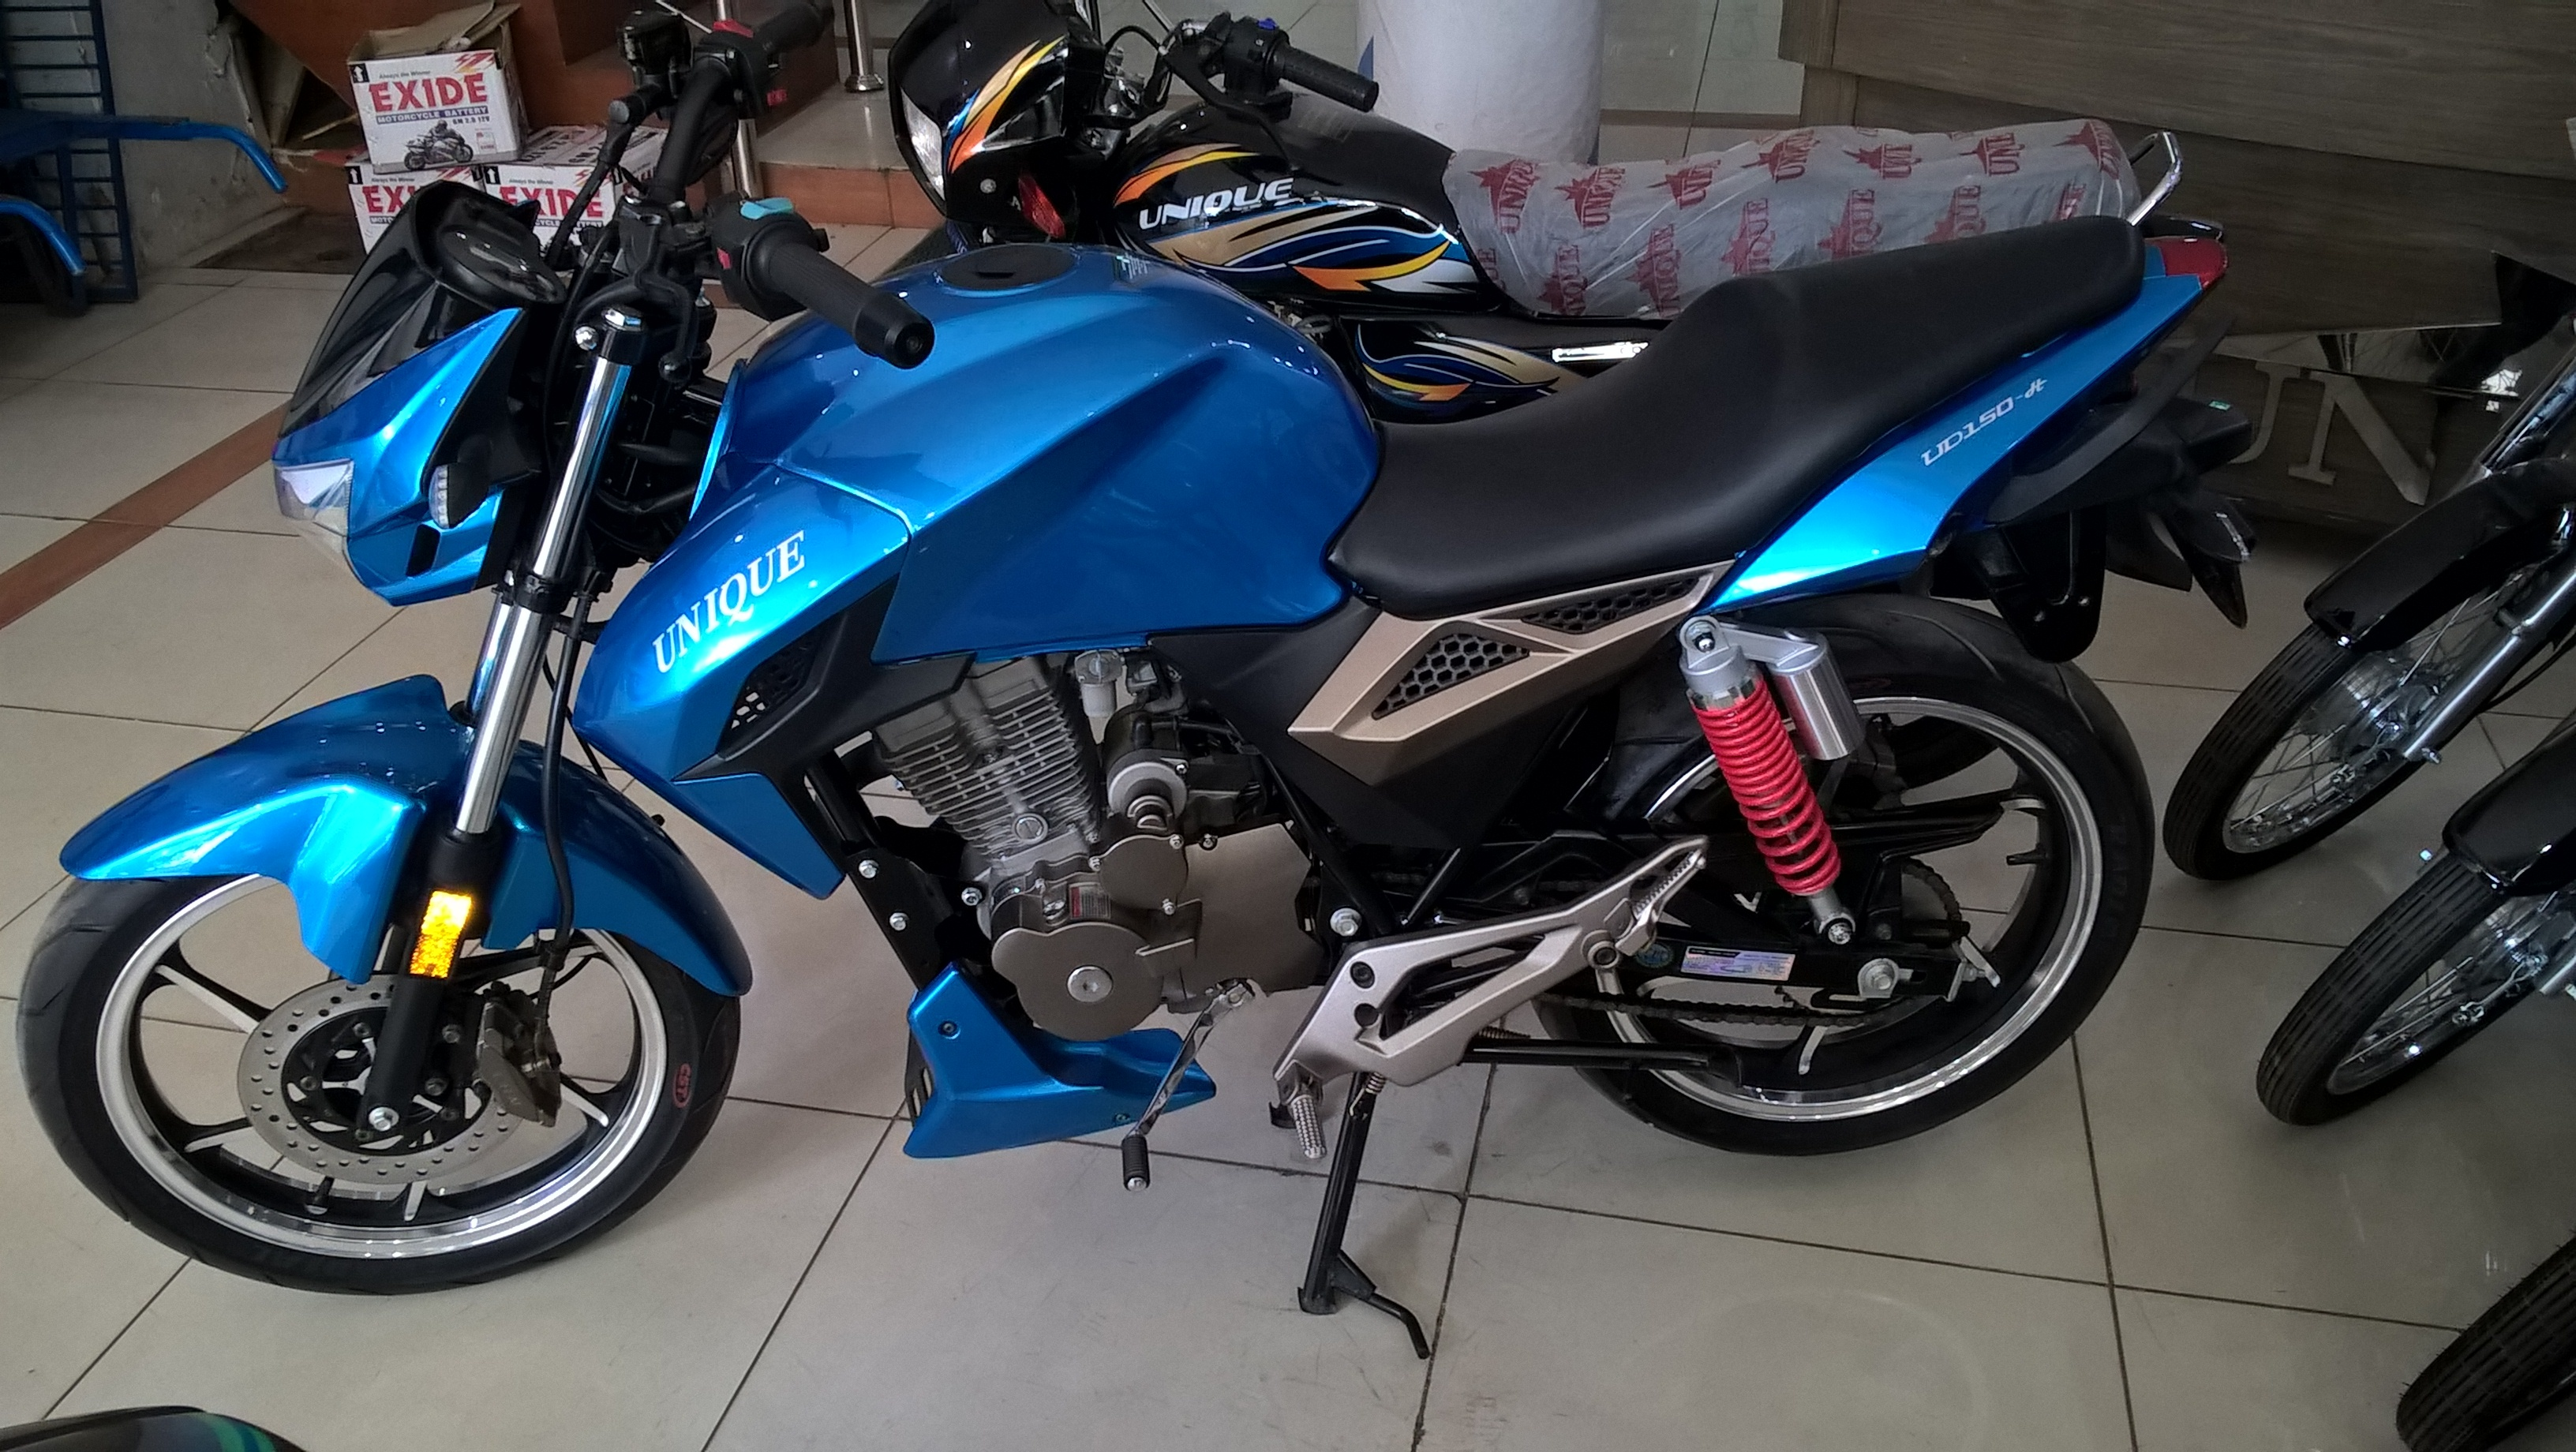 Unique 150cc coming up new model - Other Bike Makers - PakWheels ...